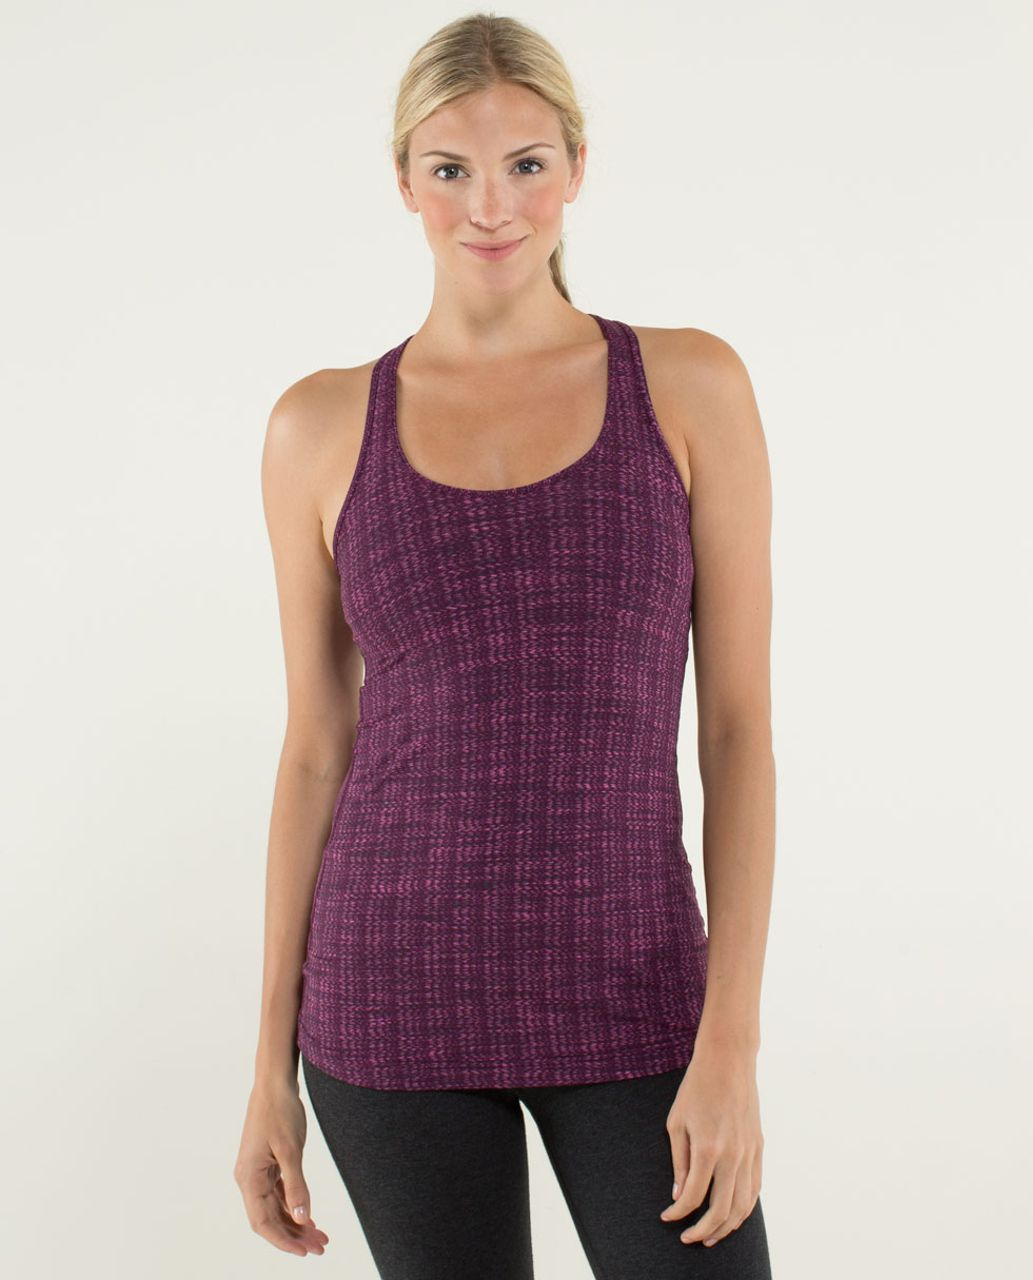 Lululemon Cool Racerback - Ziggy Wee August Glo